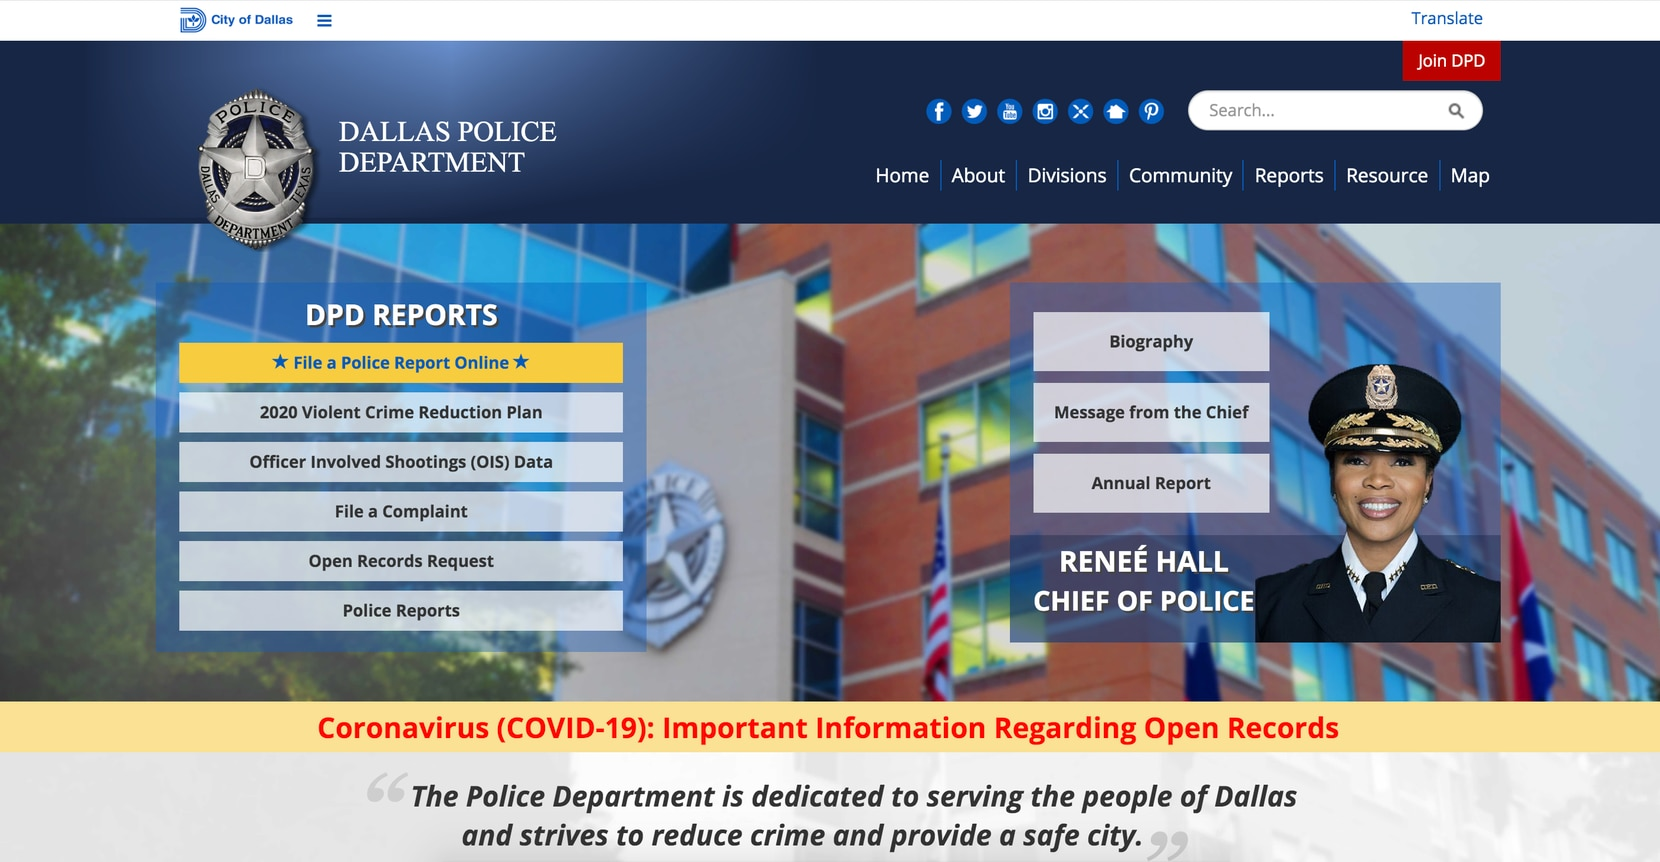 The homepage of dallaspolice.net.